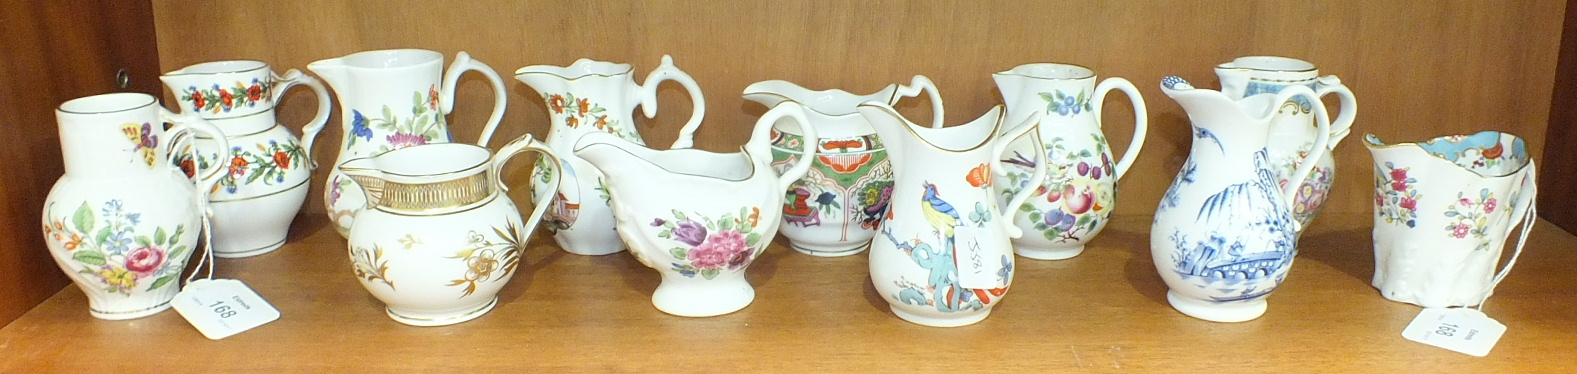 Lot 168 - Twelve Royal Worcester porcelain jugs from the 'Historic Jugs' collection, tallest 9.5cm, (12).